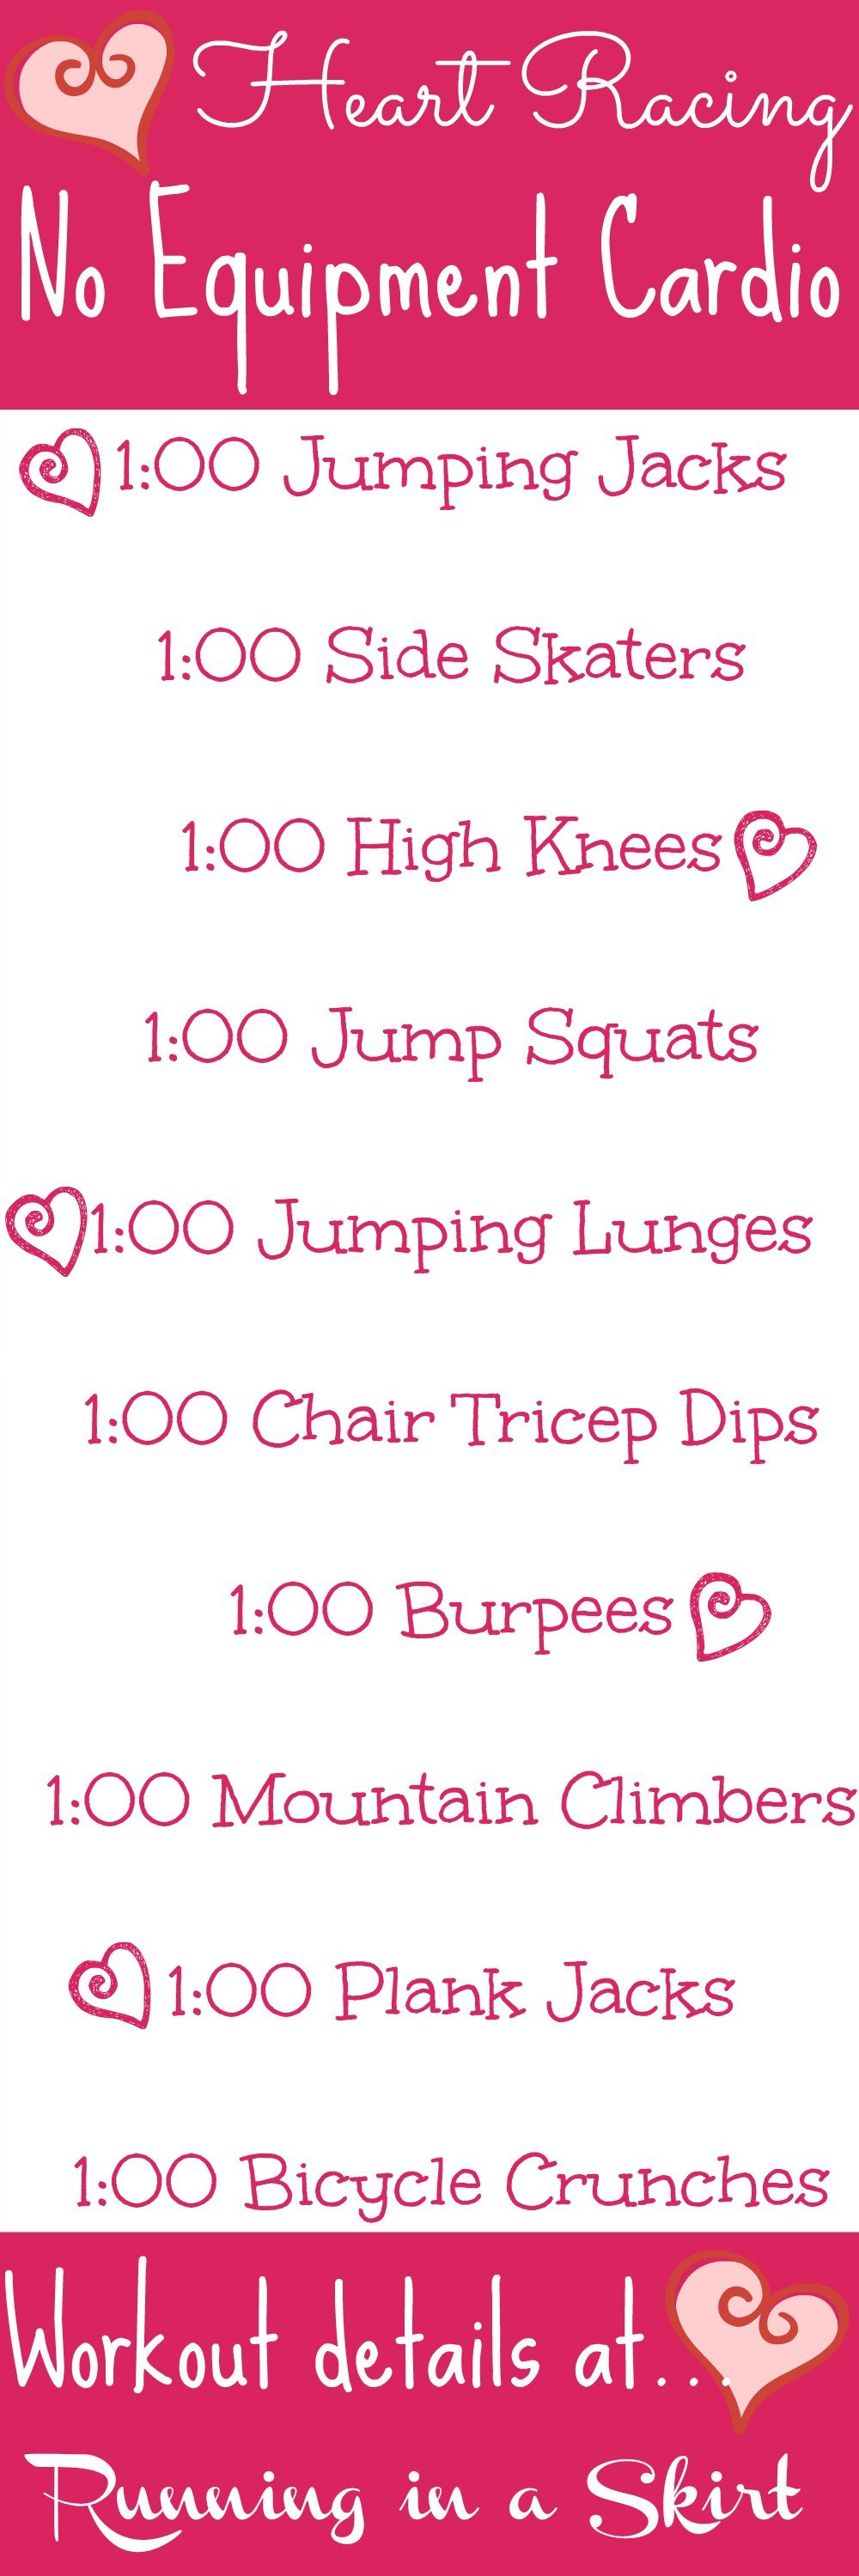 Heart Racing No Equipment Cardio Workout. Simple, effective cardio workout that you can do at home- involves NO running! Get your fitness on and heart rate up! | Running in a Skirt via @juliewunder